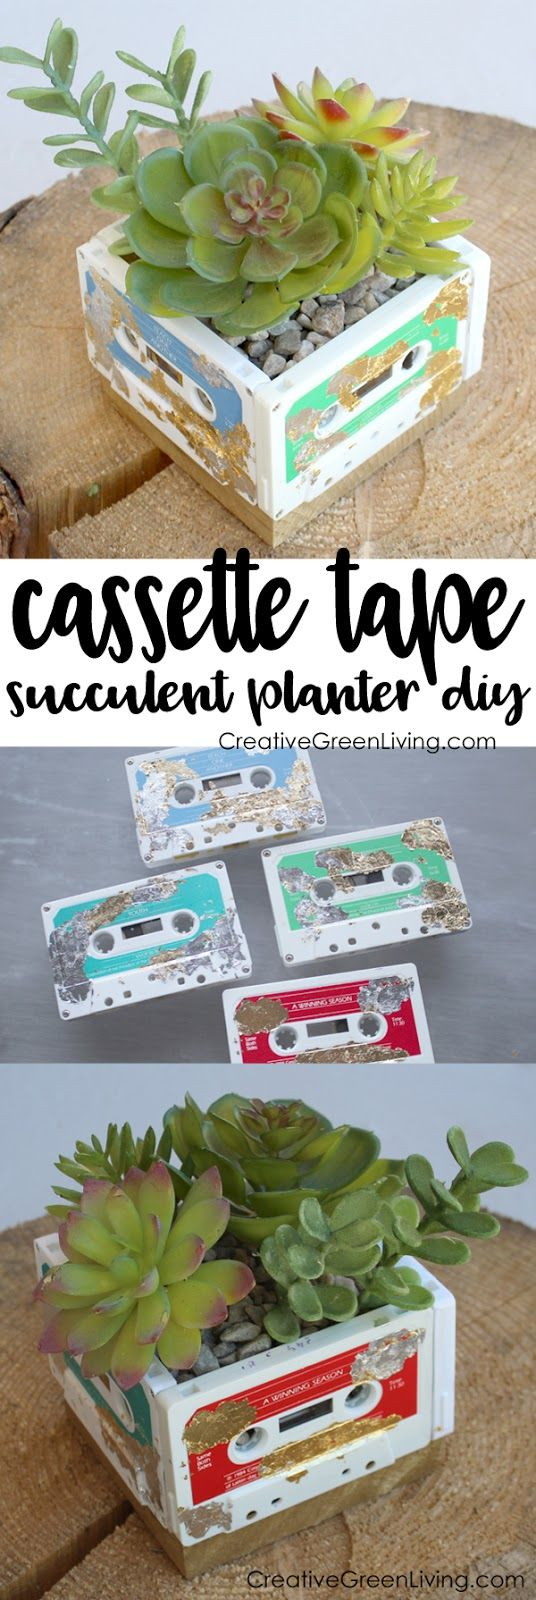 Photo of Make a Recycled Cassette Tape Succulent Planter